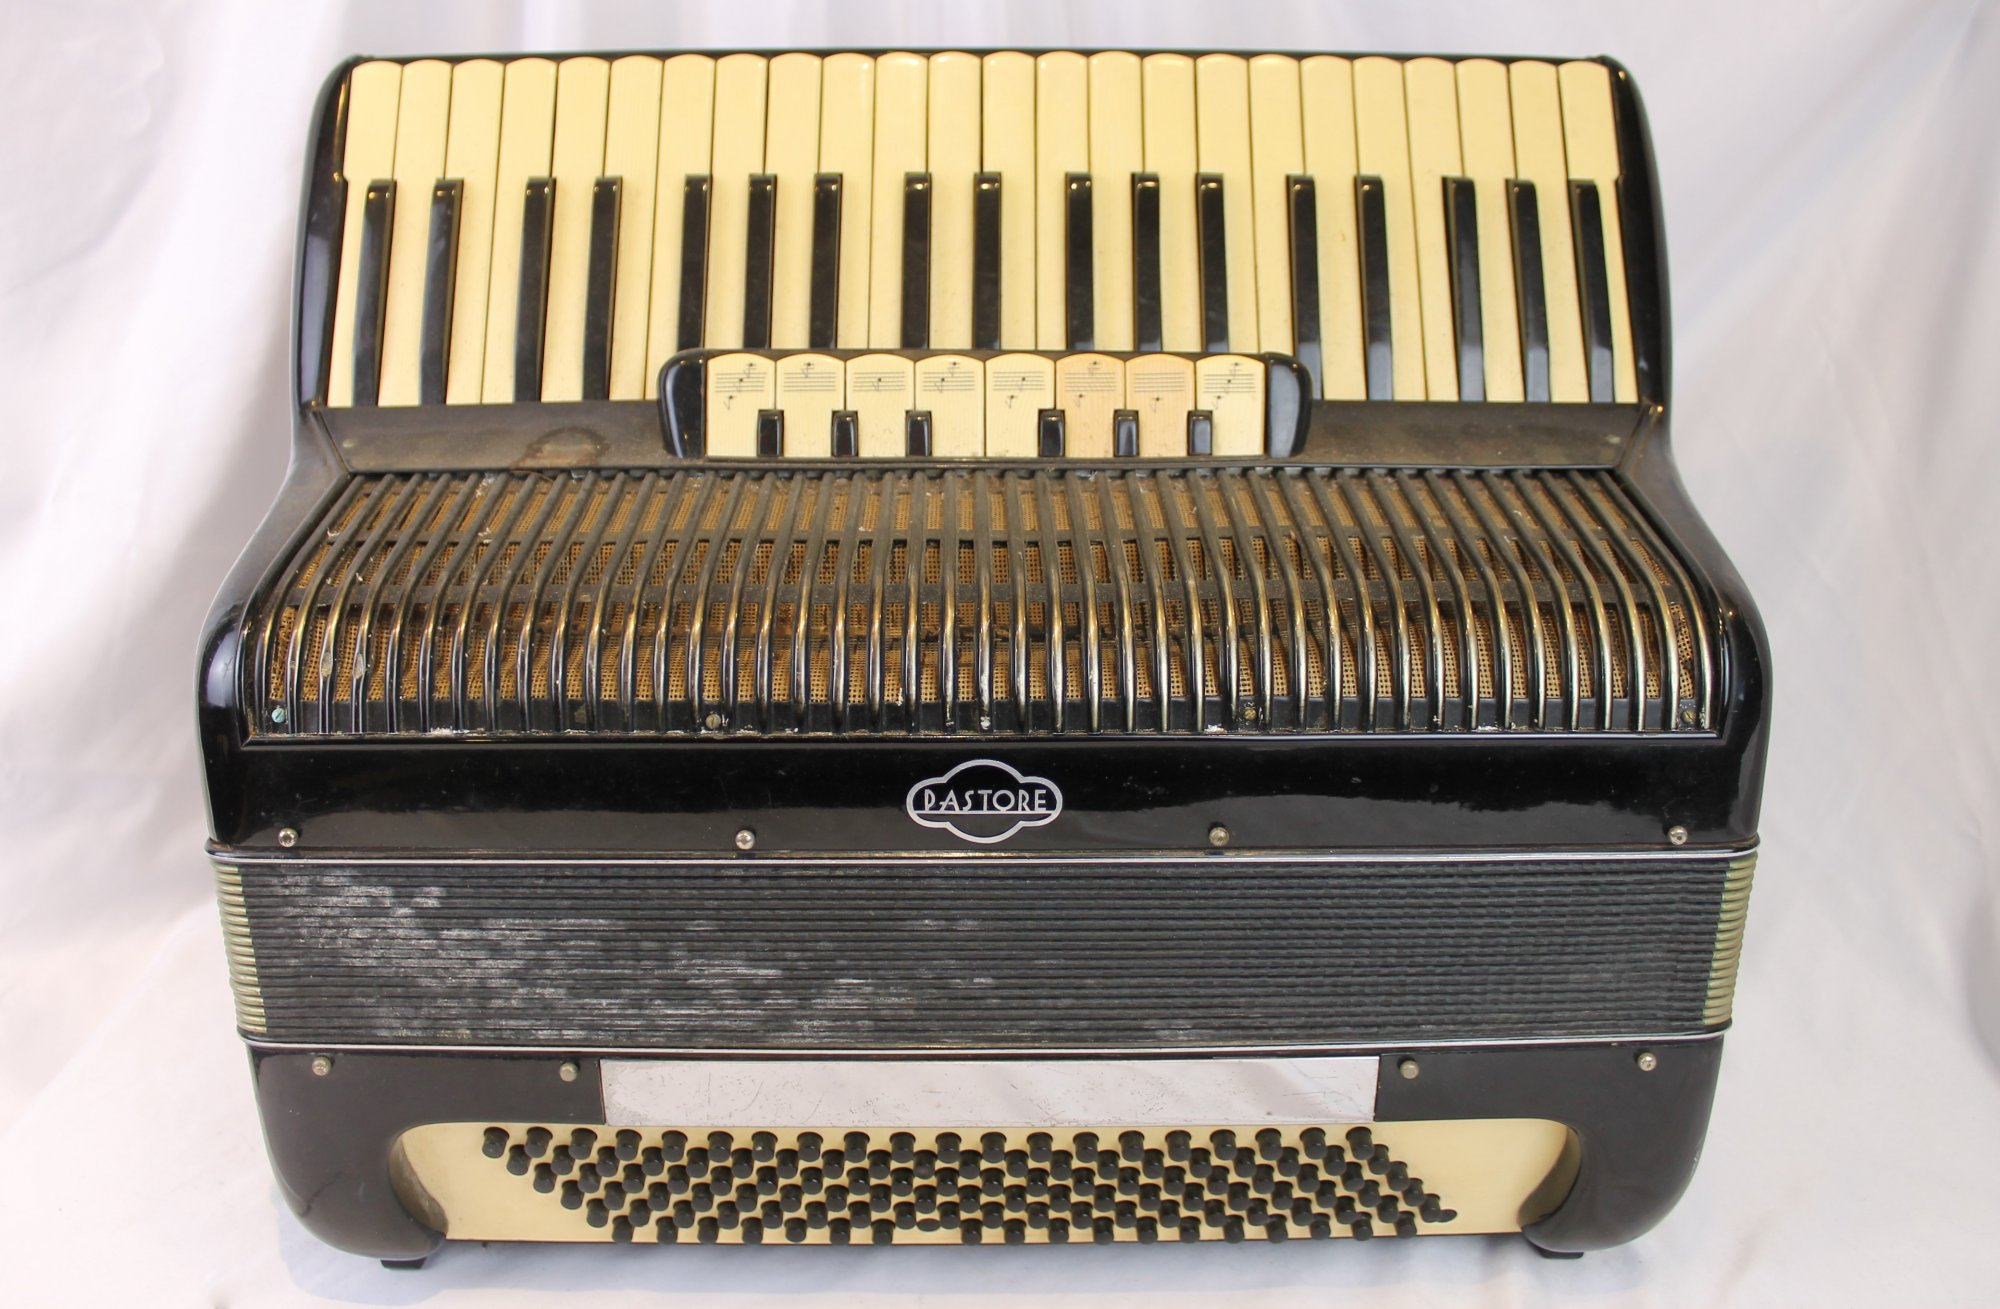 4565 - Black Pastore Piano Accordion LMH 41 120 - For Parts or Repair